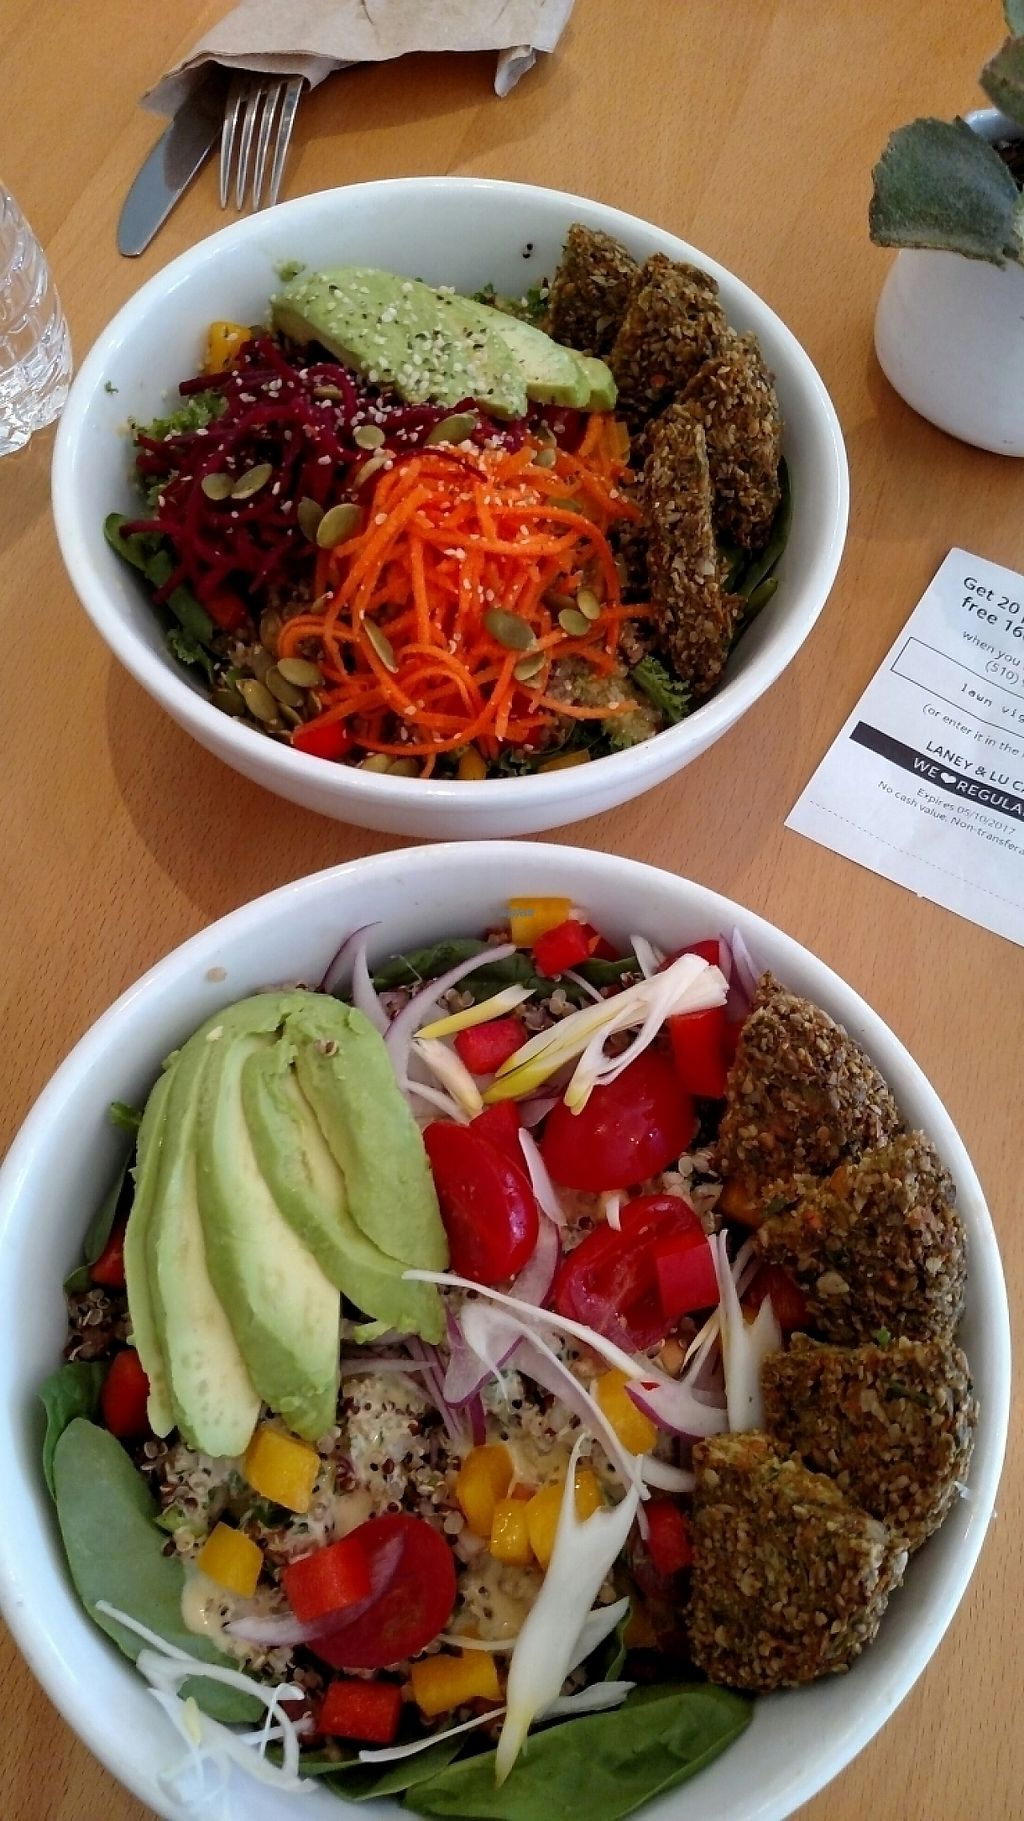 """Photo of Laney & Lu  by <a href=""""/members/profile/monandeclan"""">monandeclan</a> <br/>Kale quinoa bowl & Mediterranean bowl <br/> April 9, 2017  - <a href='/contact/abuse/image/64738/246277'>Report</a>"""